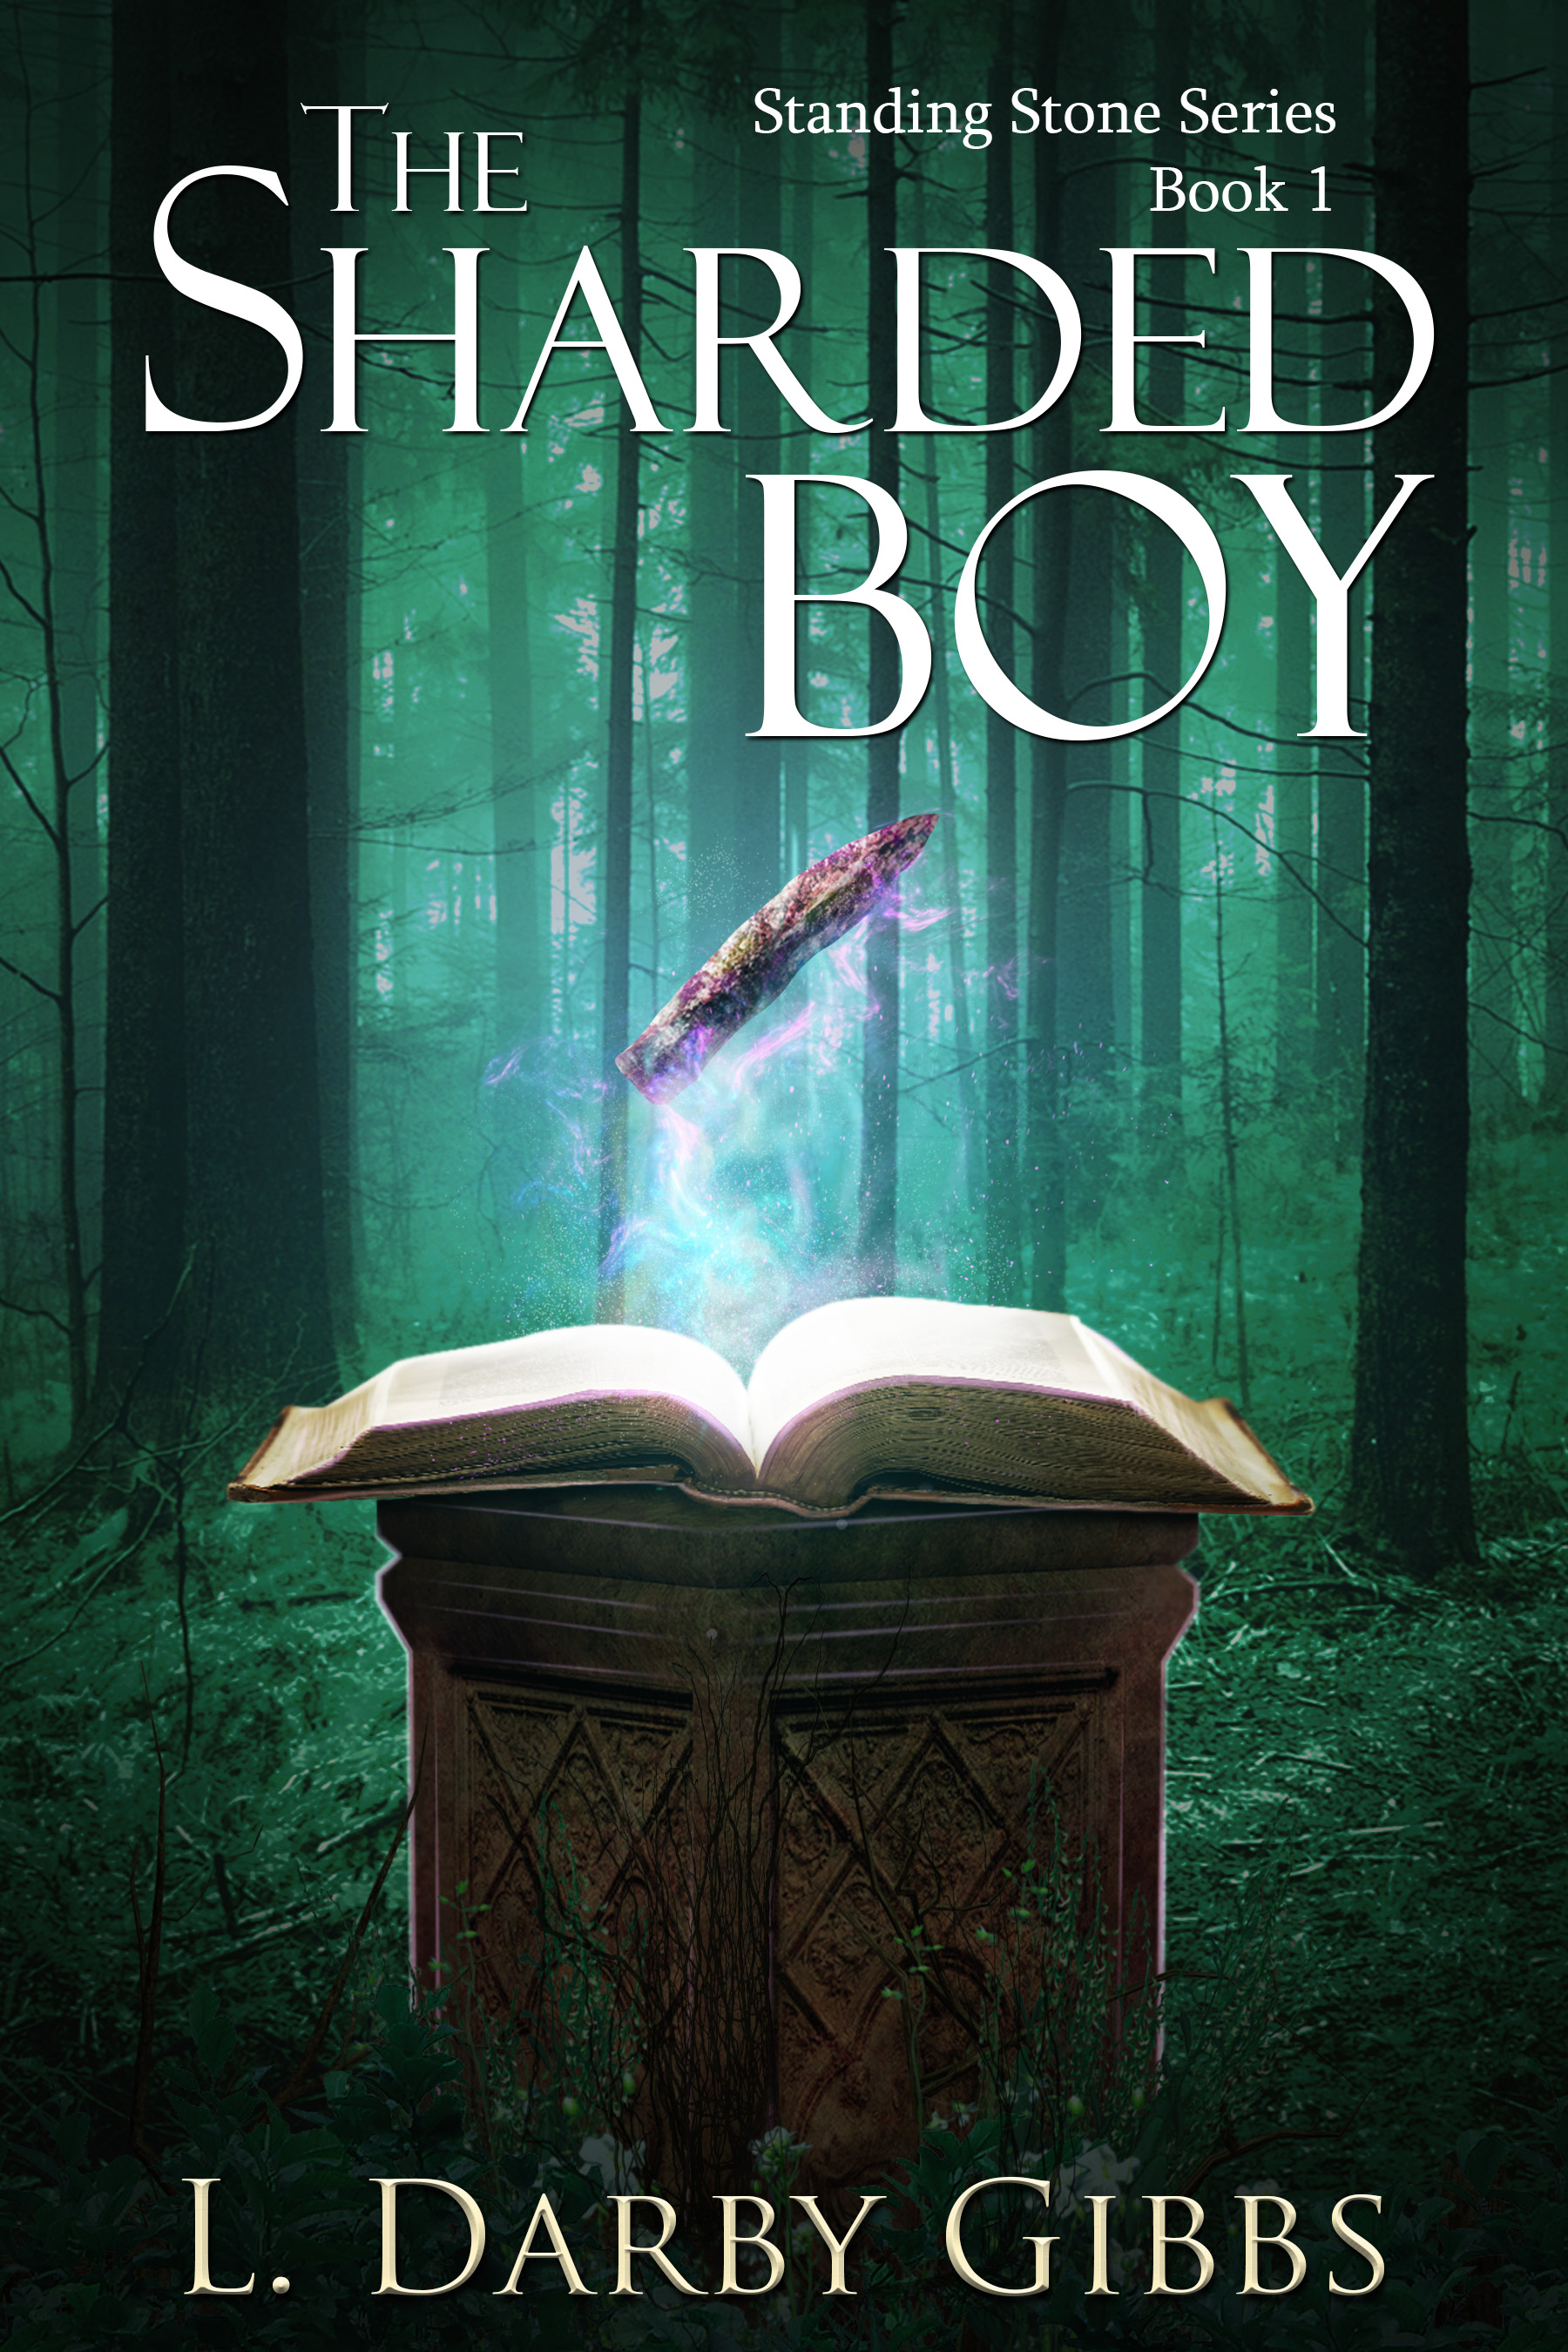 The Sharded Boy